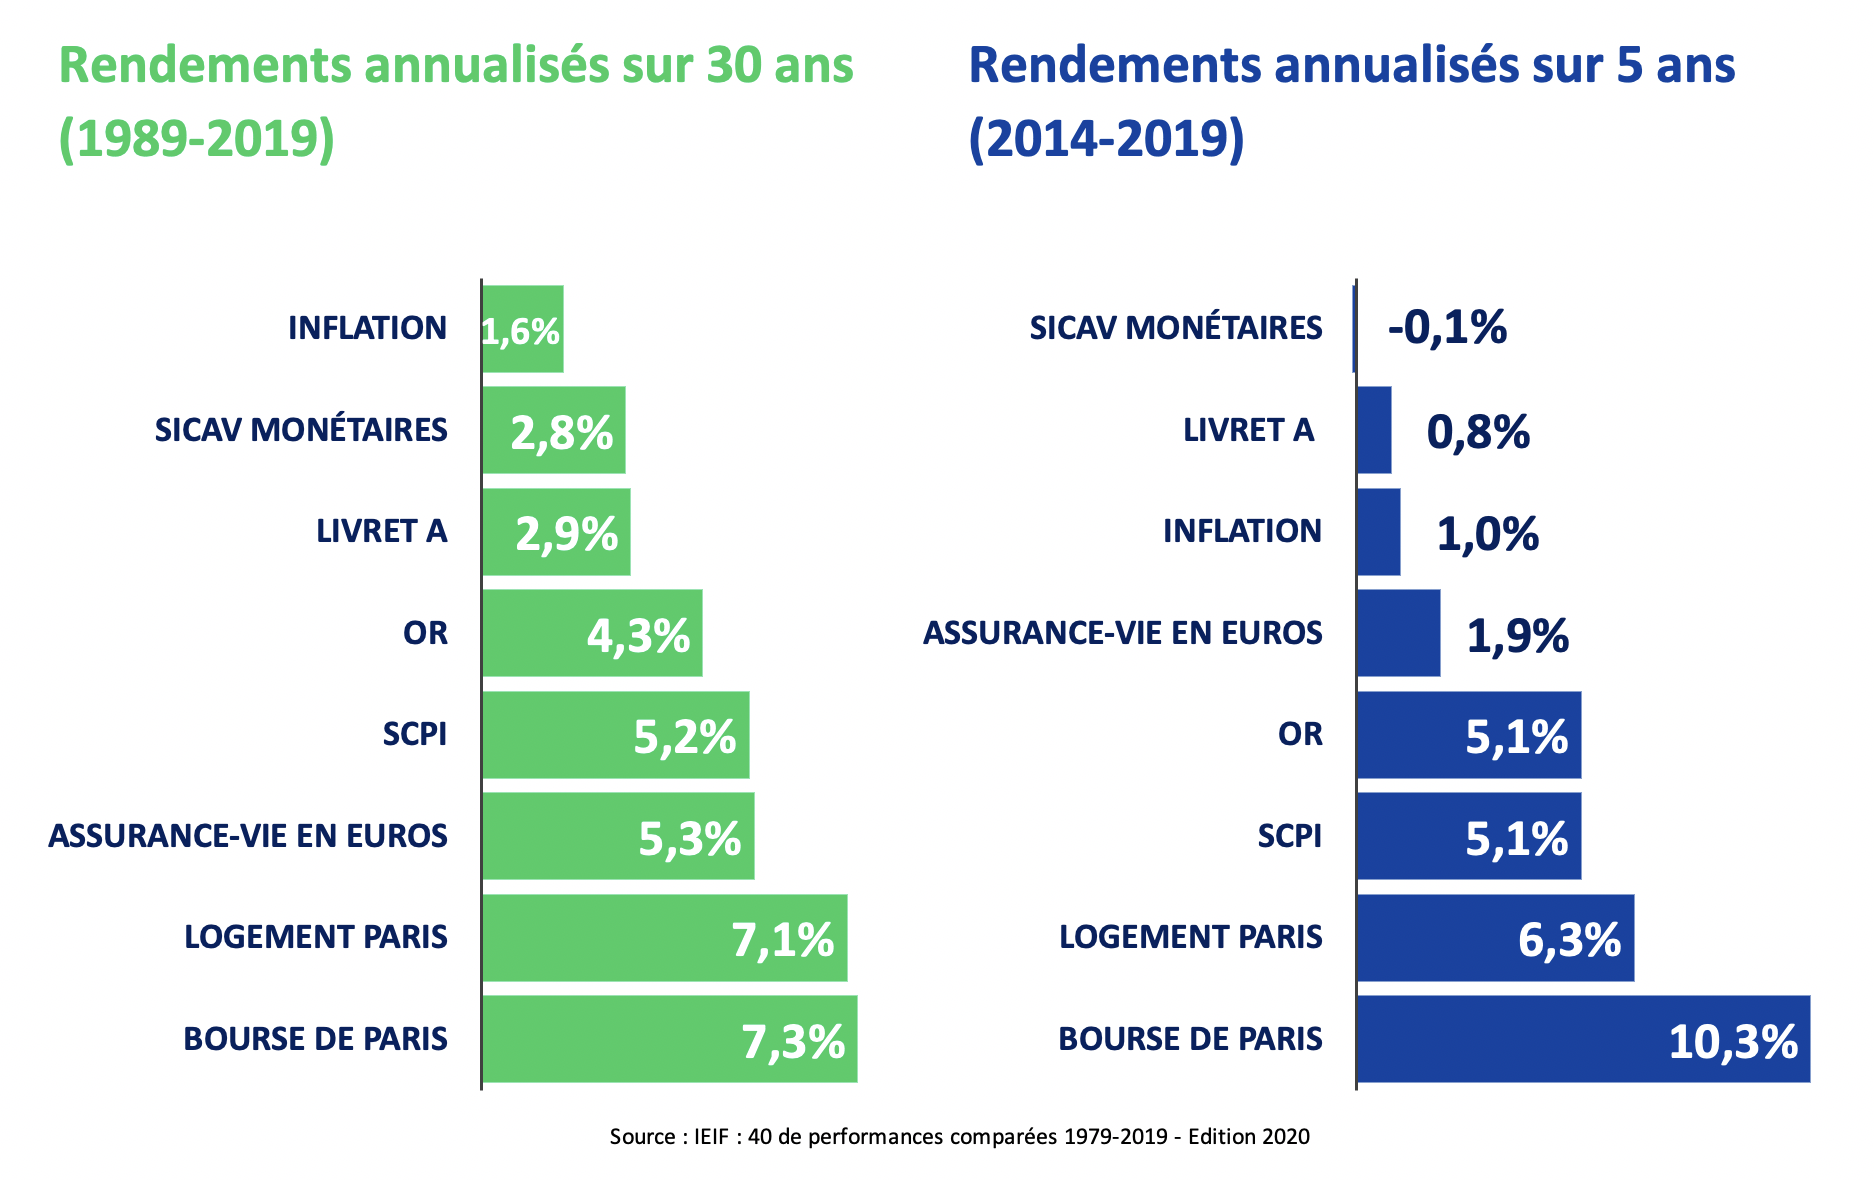 rendement annualises meilleur placement financier 2020